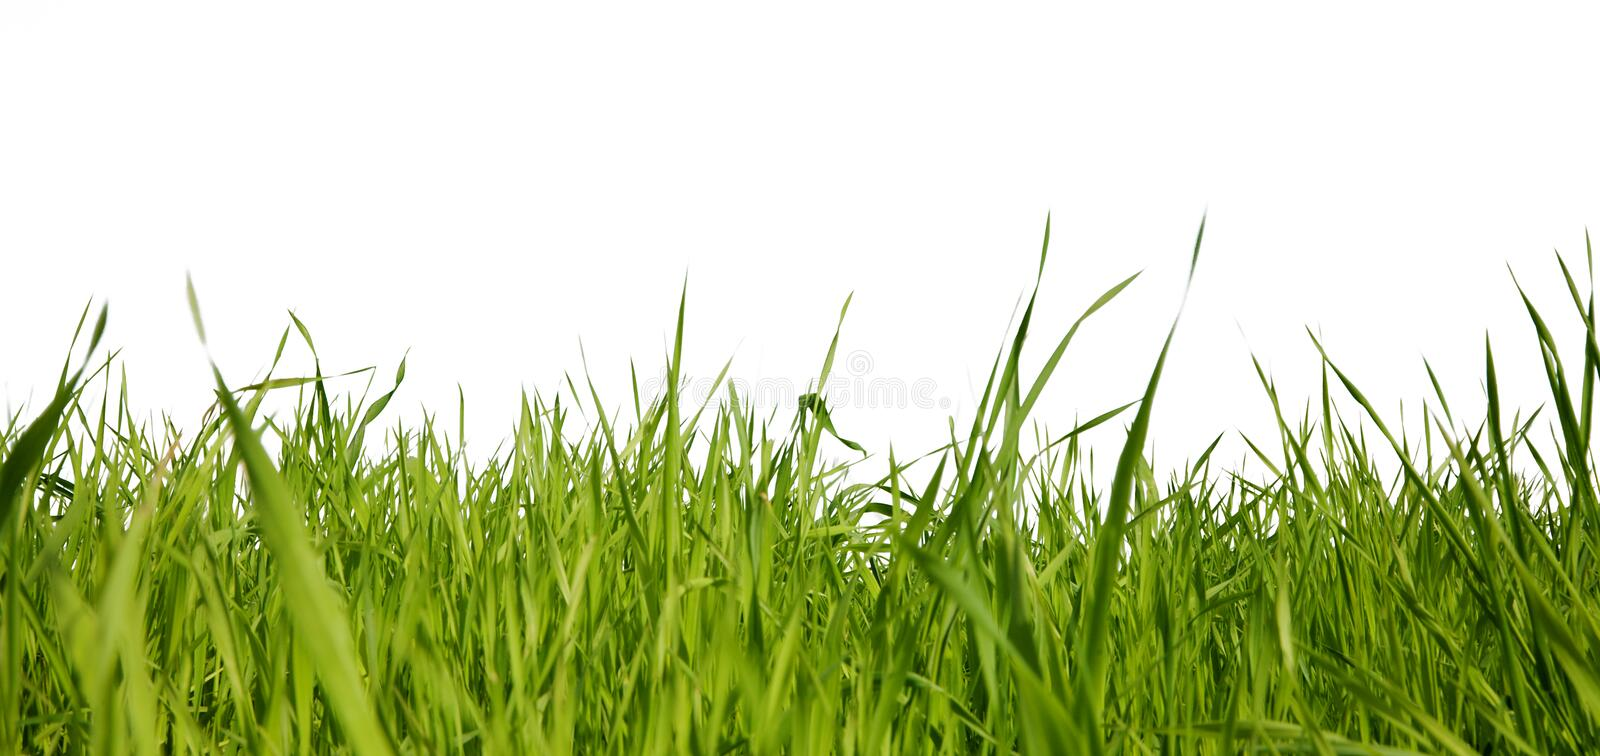 Green grass. On a white background royalty free stock image